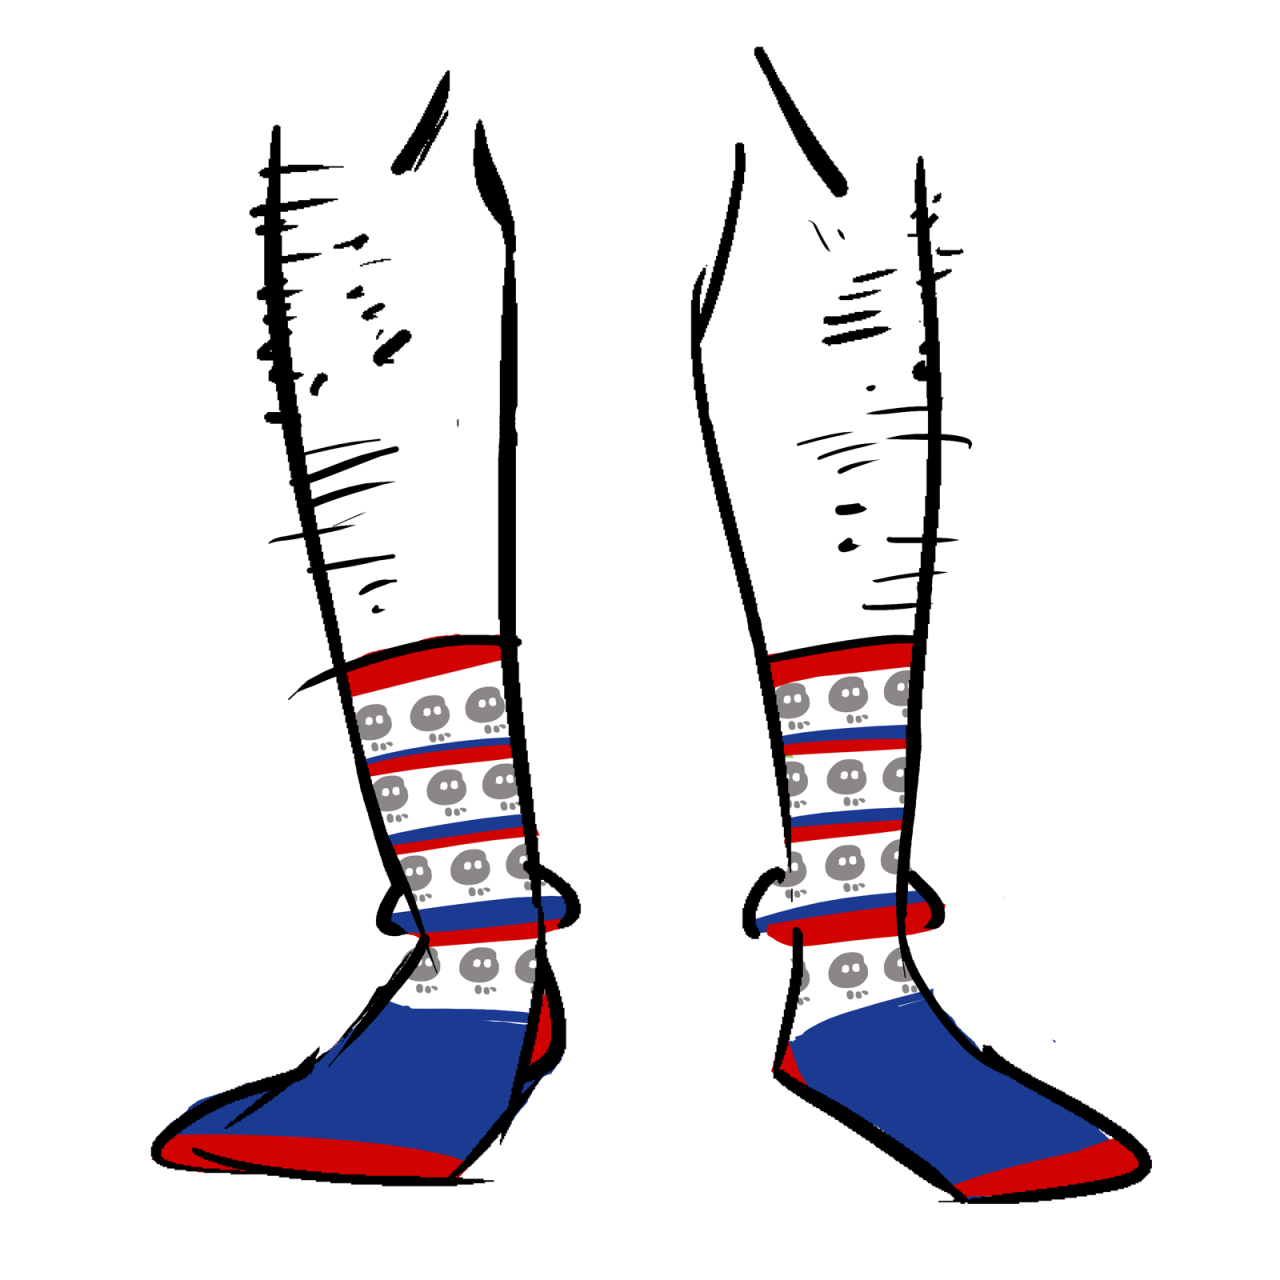 White socks with blue feet. The calves have an alternating row pattern of skulls and red stripes